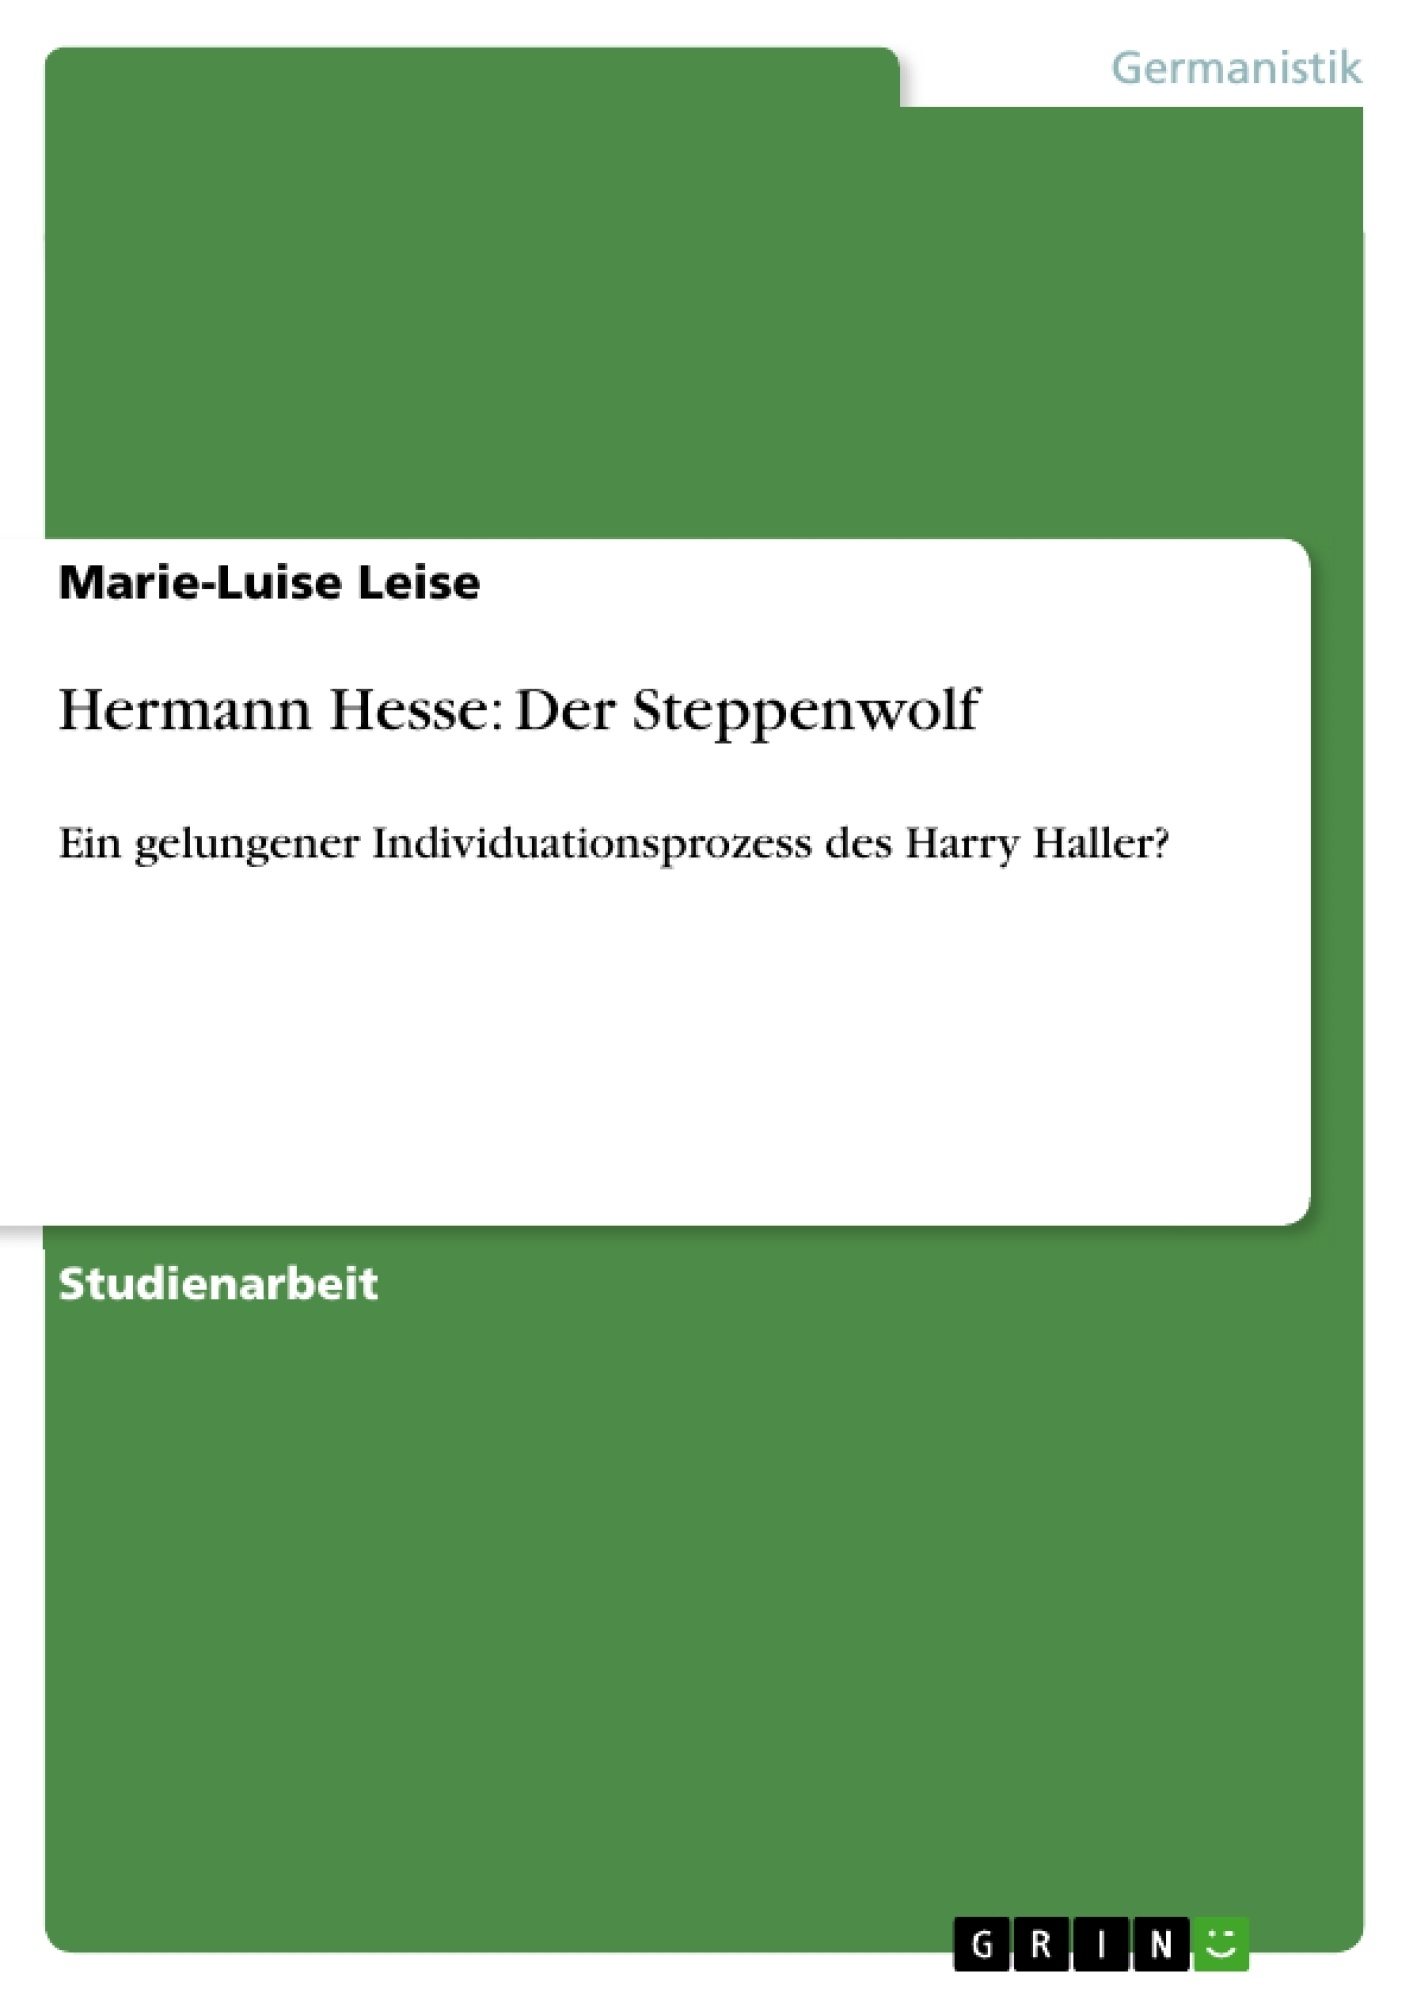 Titel: Hermann Hesse: Der Steppenwolf